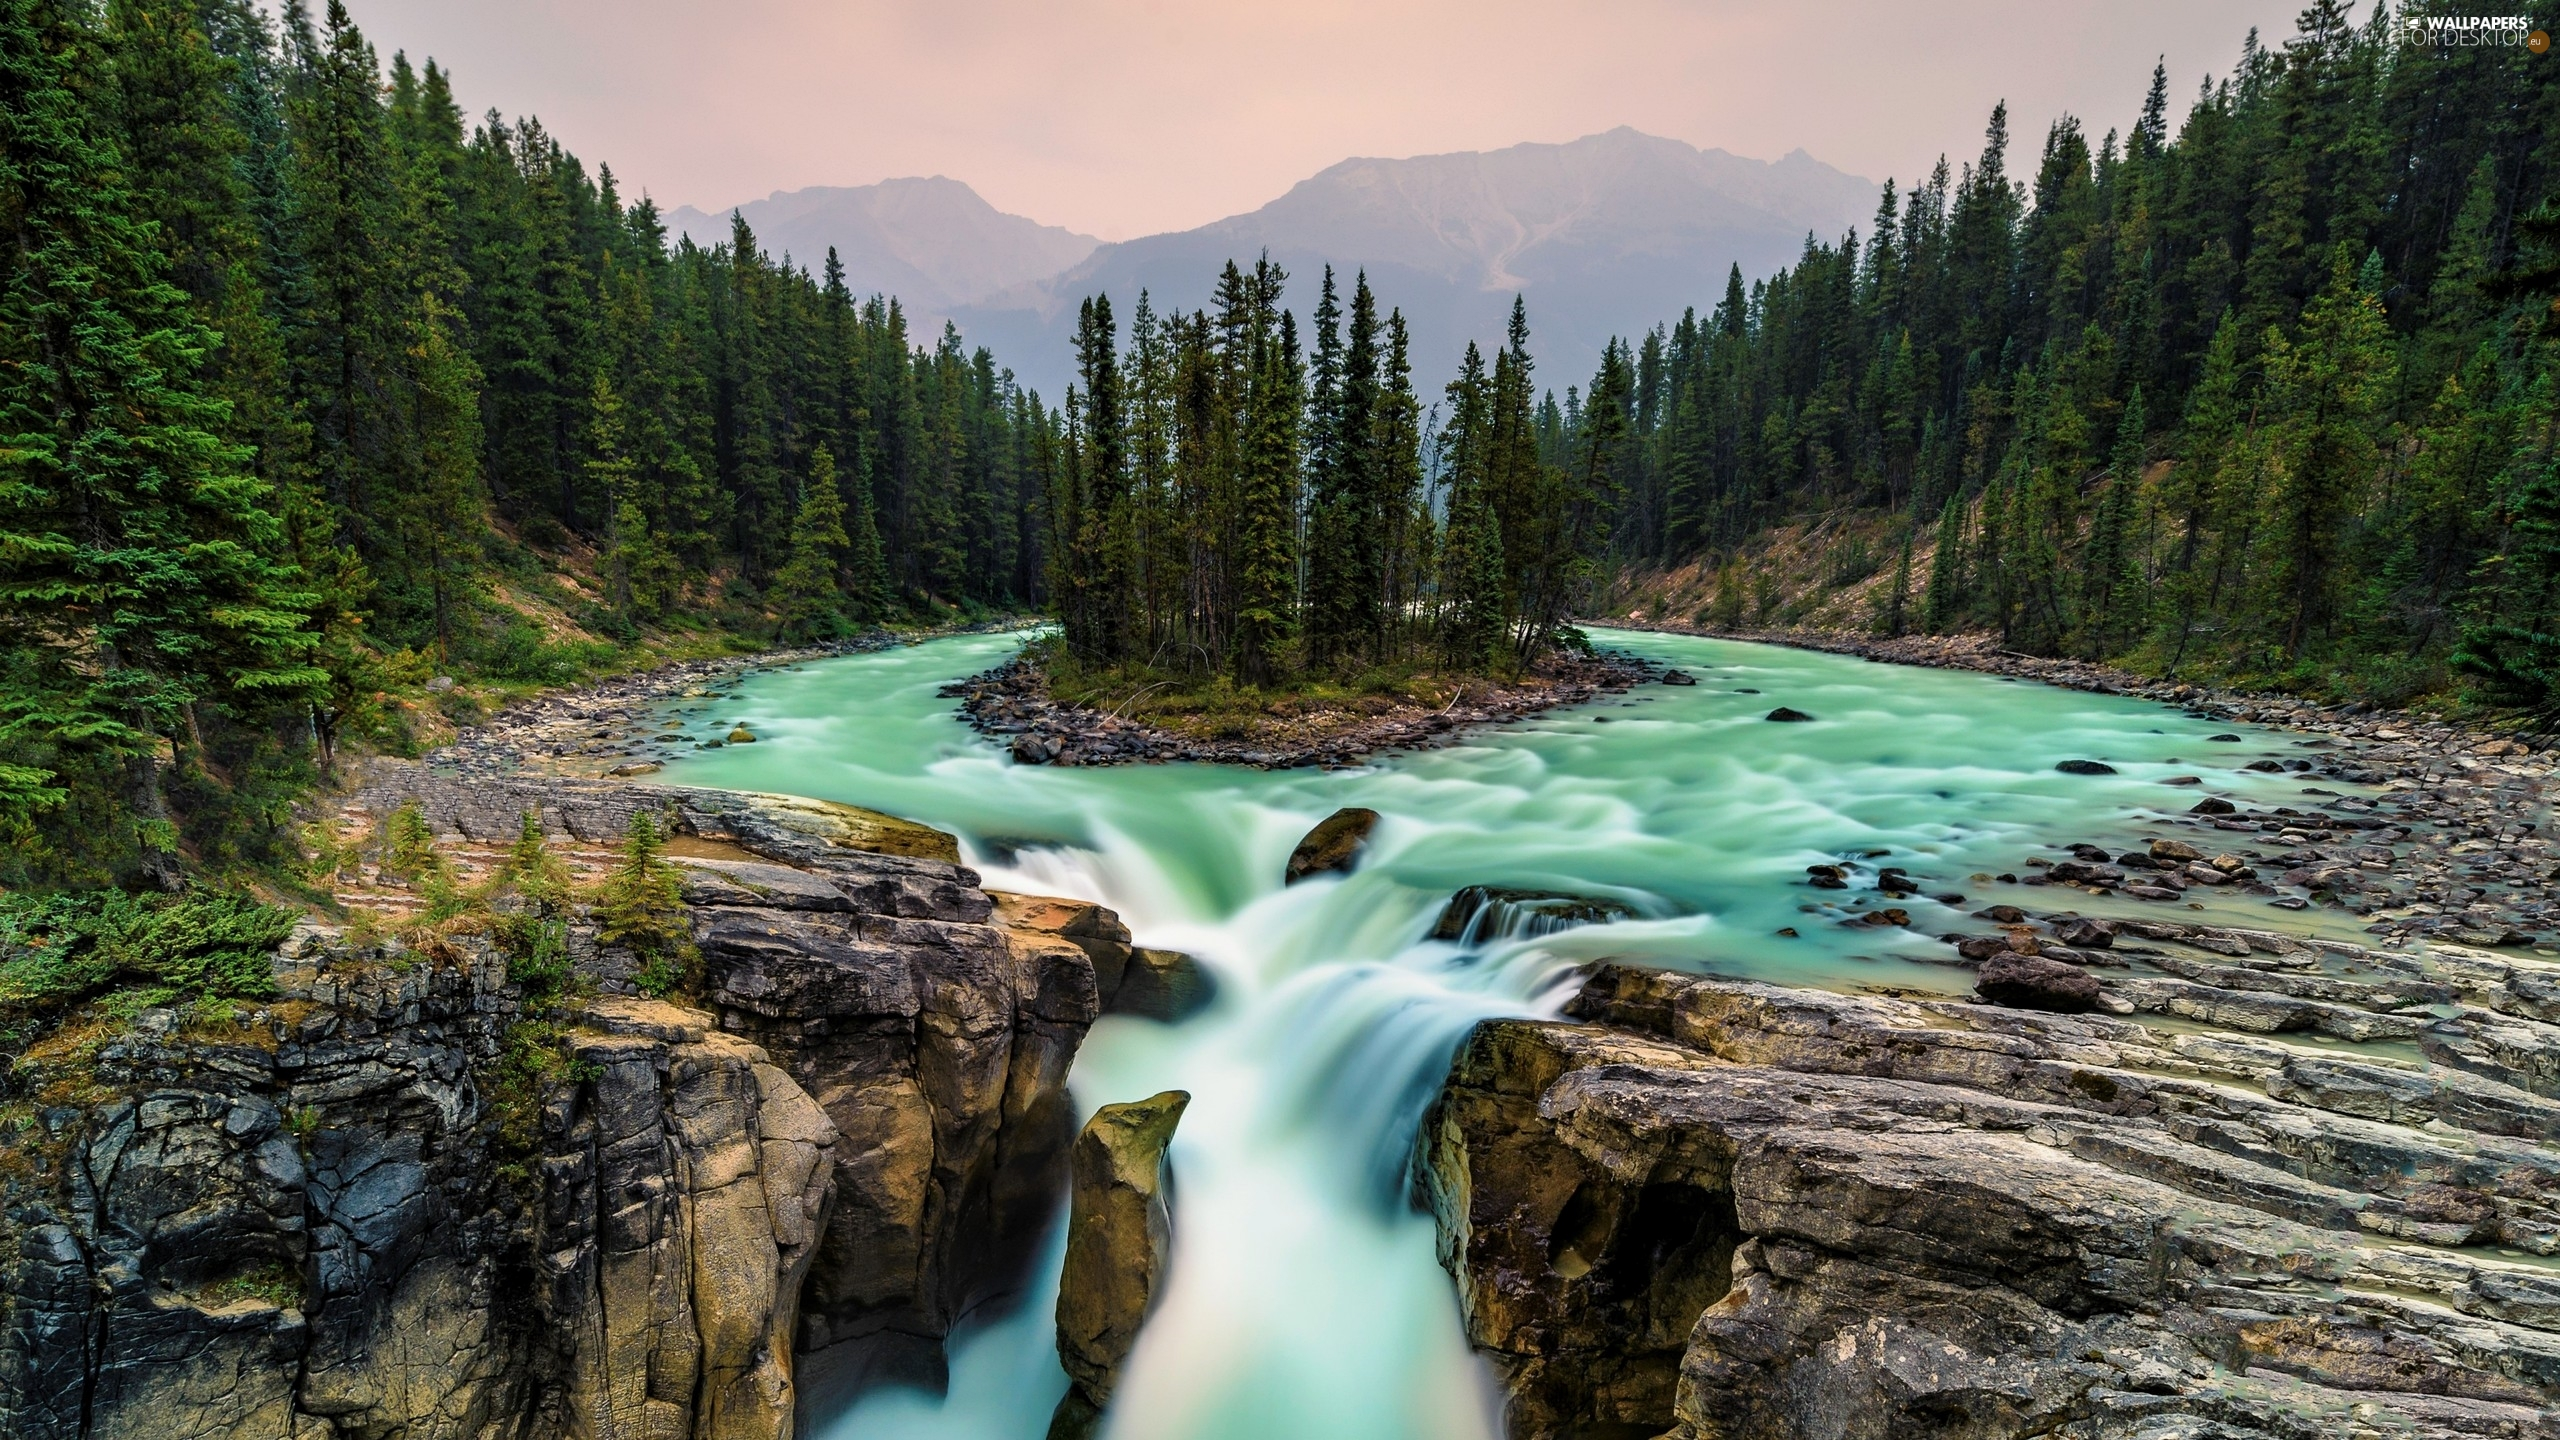 Sunwapta River, Sunwapta Waterfall, forest, trees, Alberta, Canada, Mountains, Jasper National Park, viewes